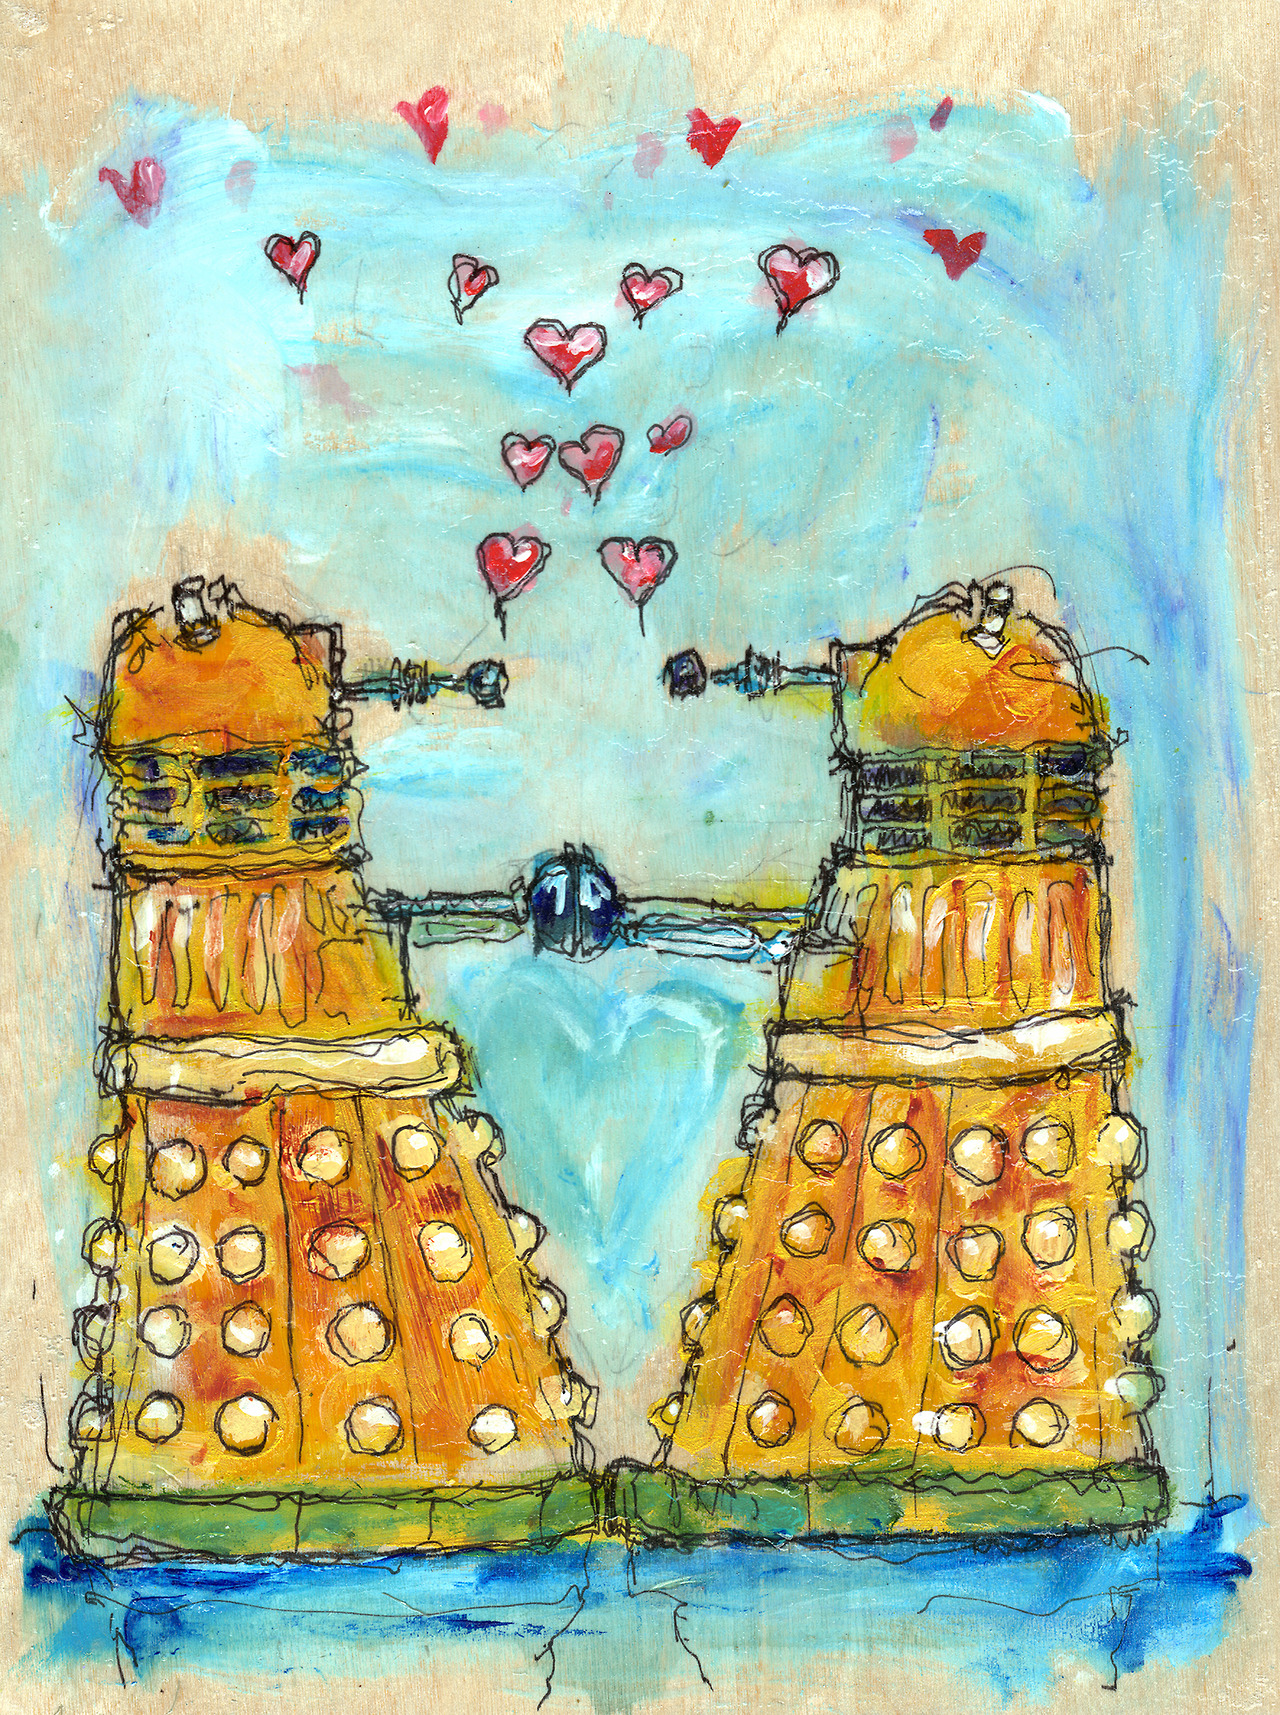 11/23/13 -  Exterminating Love.    Today's the 50th Anniversary of Doctor Who. I grew up watching the show with my dad. The things I remember most about it were the pledge drives. Damn they were annoying. But, yeah. I also remember the Daleks. They creeped me out as a kid. Now I realize they're just misunderstood.   I've got 7 days left on my kickstarter. Please, please take a look at it when you get a chance.    http://www.kickstarter.com/projects/taylorwinder/the-art-book-of-the-year